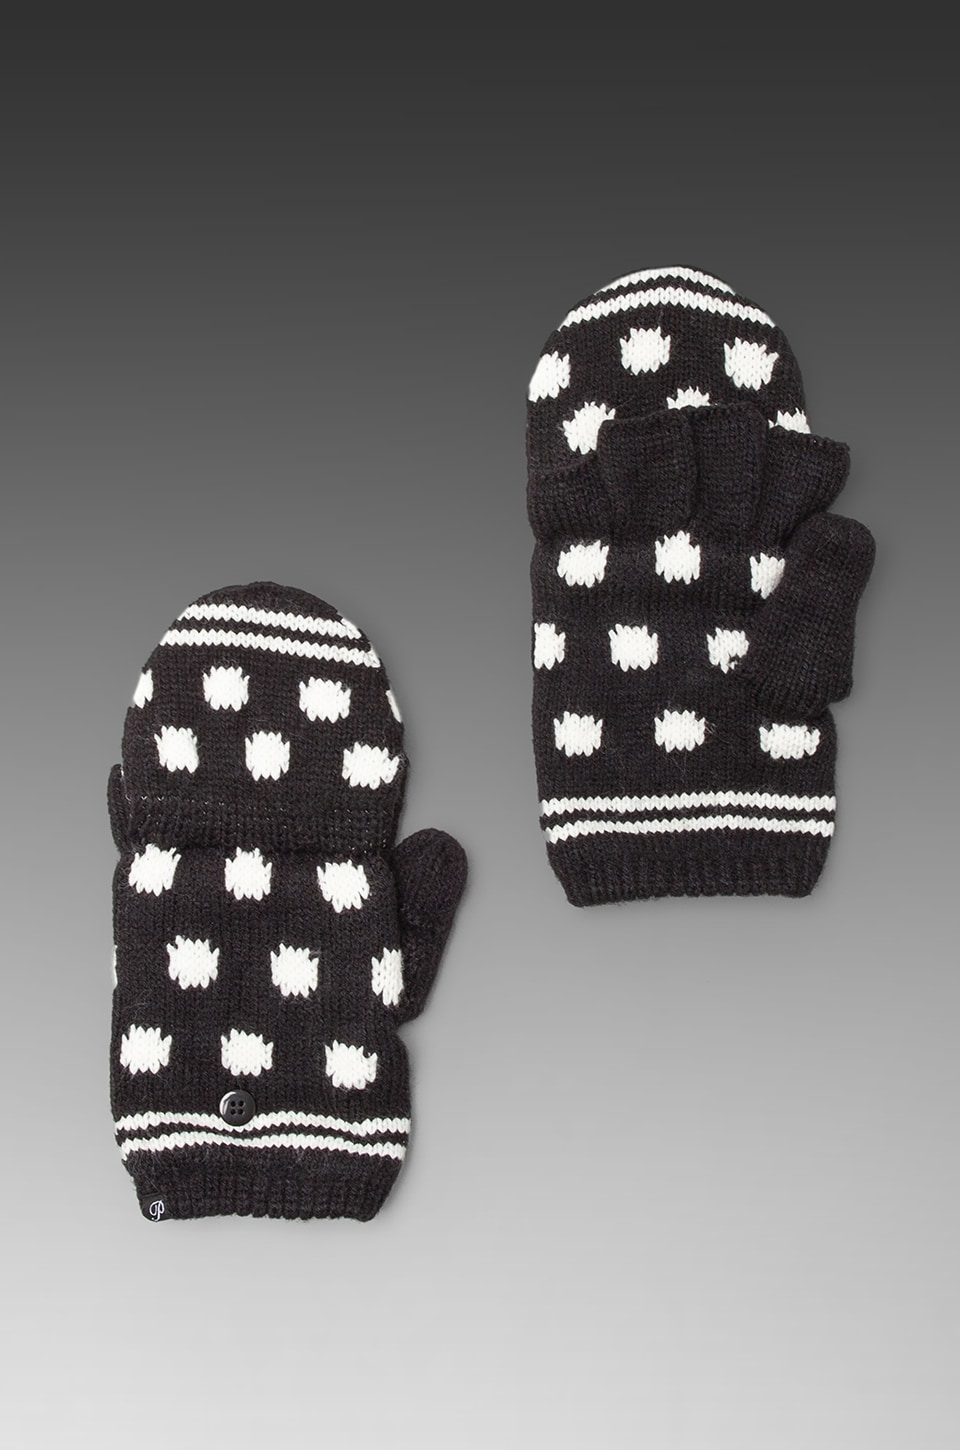 Plush Polka Dot Texting Mittens in Black/White